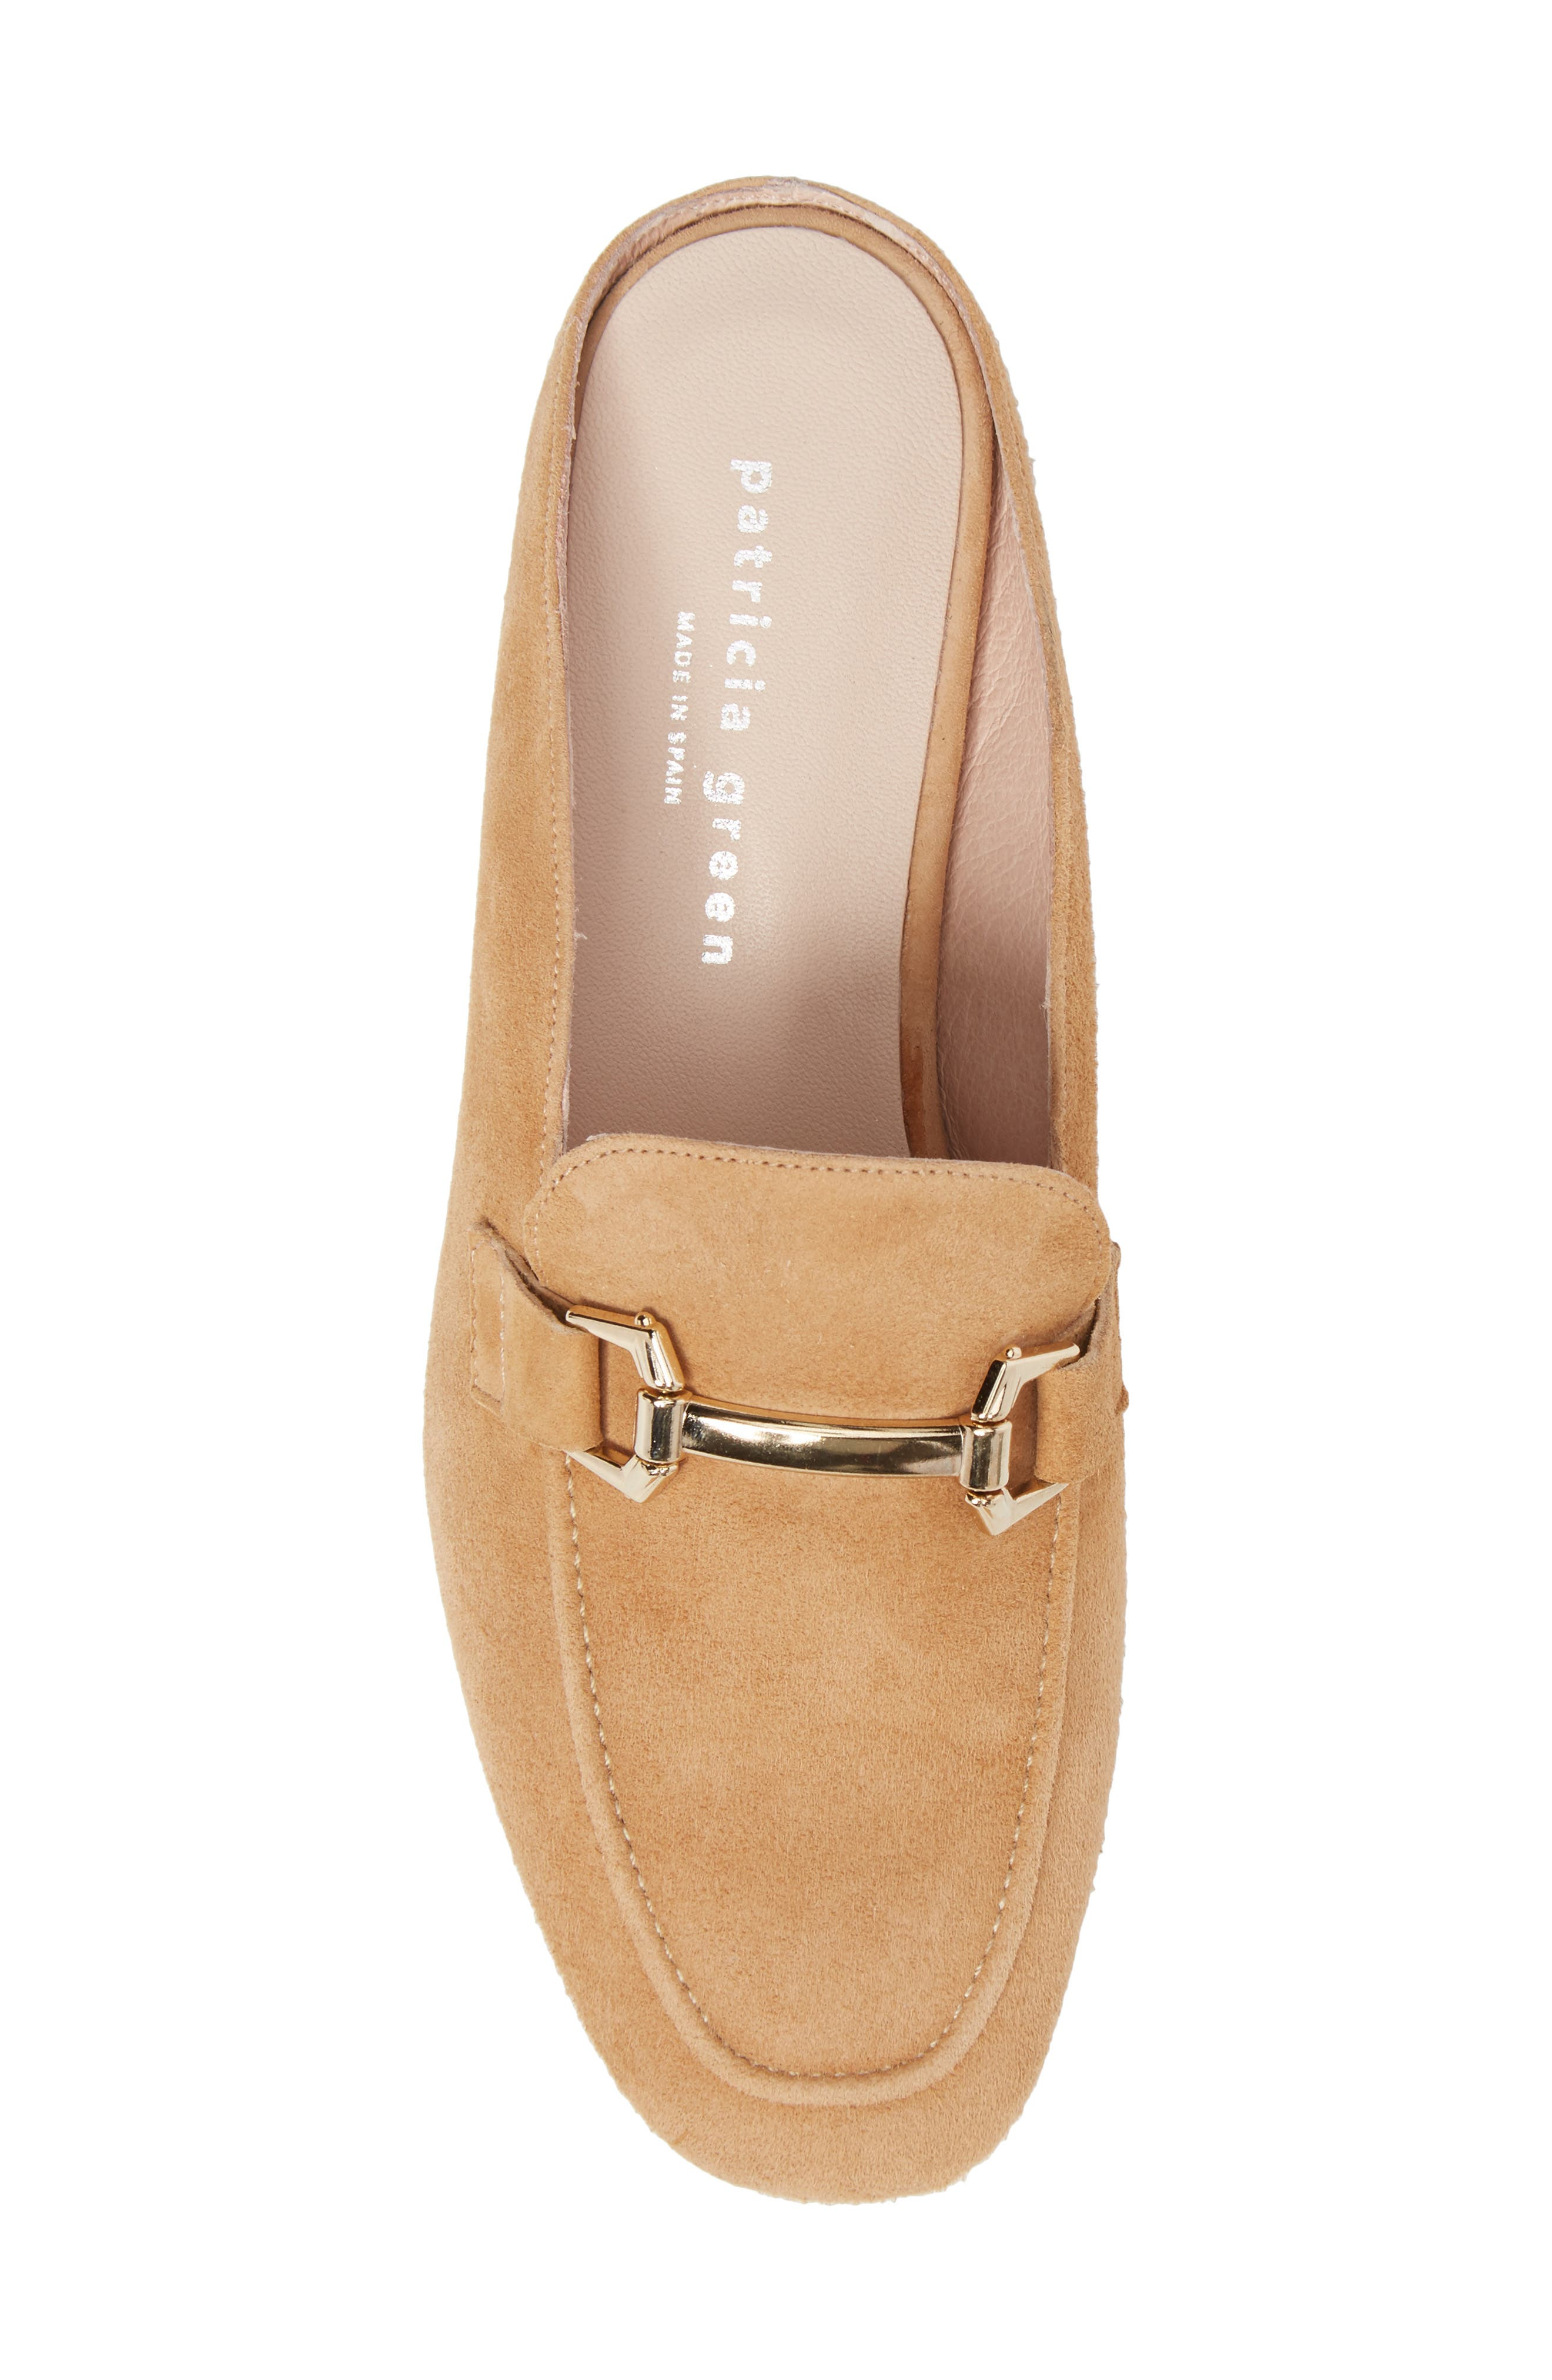 Sorrento Too Mule,                             Alternate thumbnail 5, color,                             Camel Suede